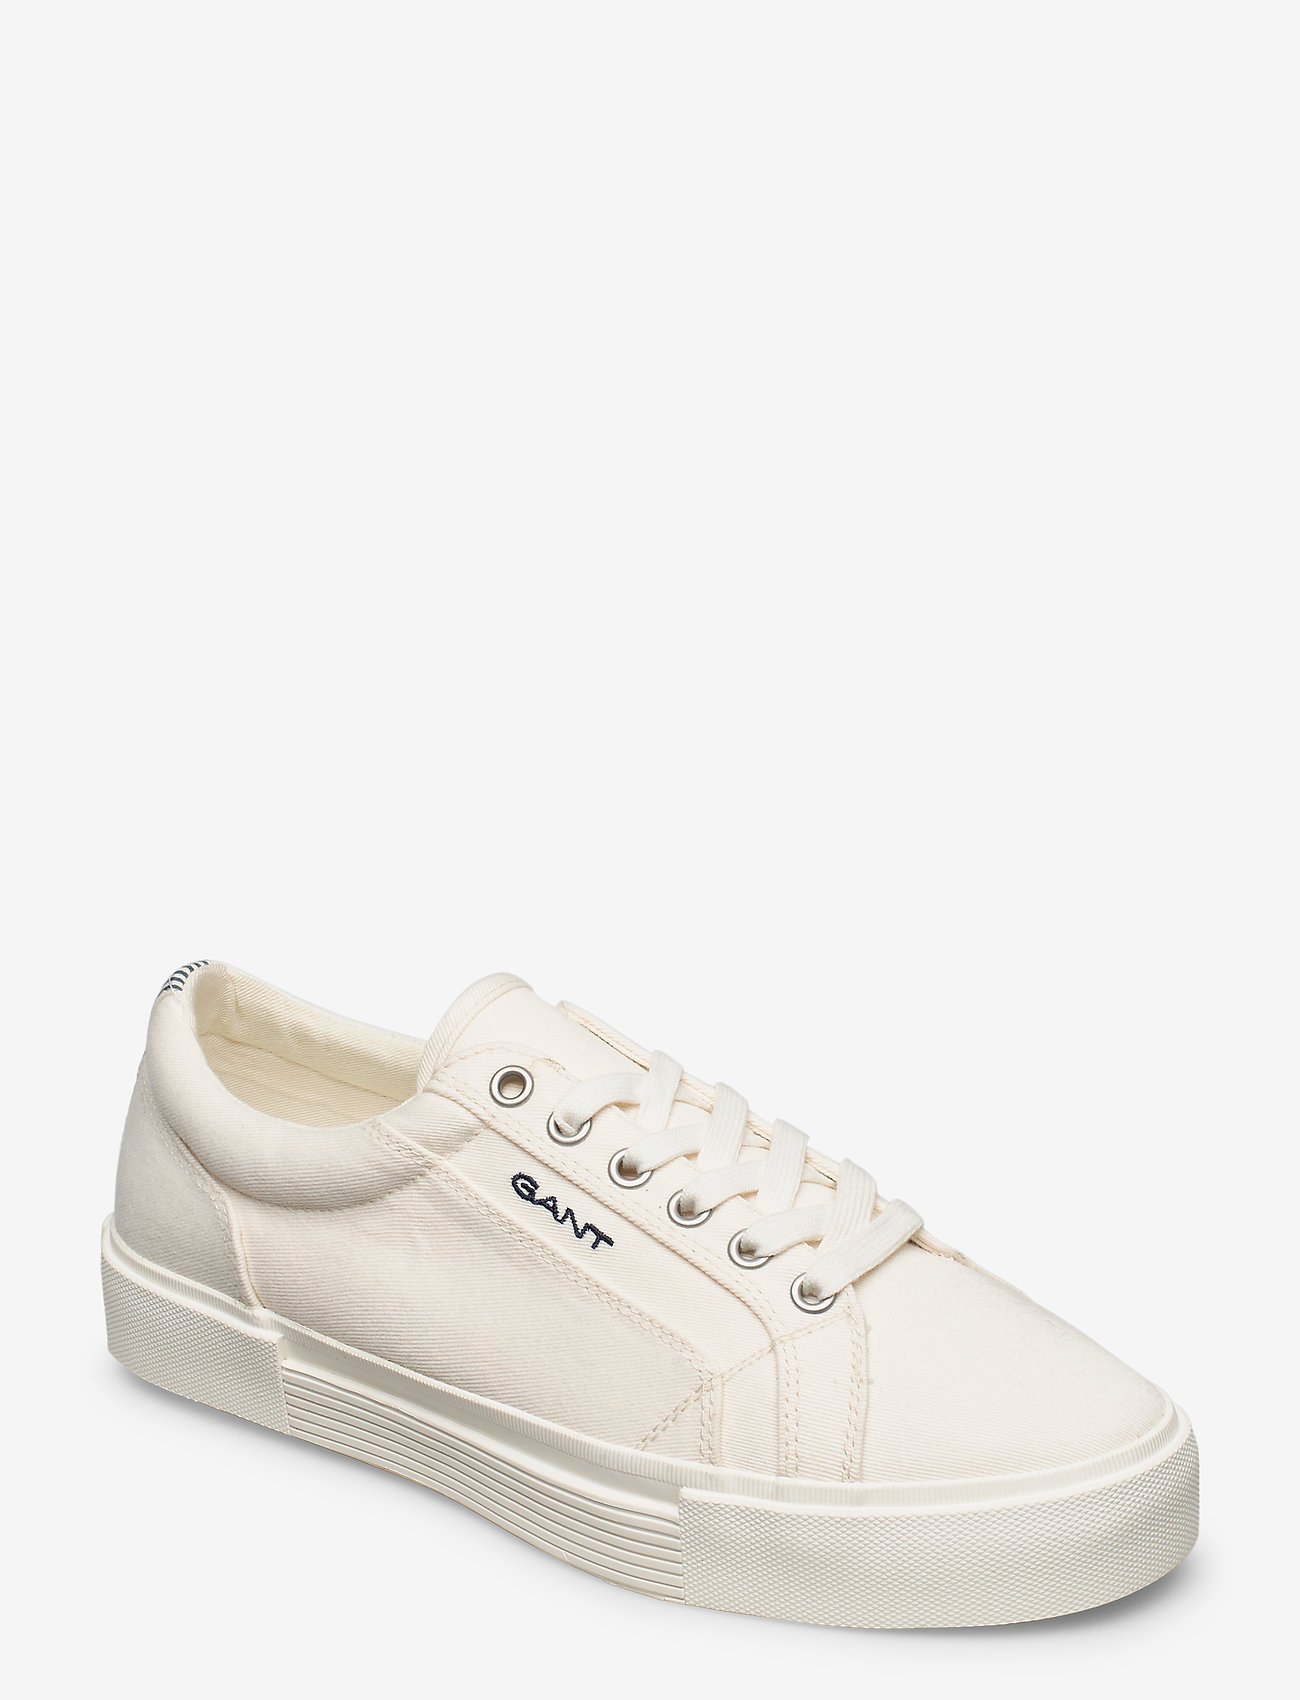 GANT - Champroyal Low laceshoes - low tops - off white - 0